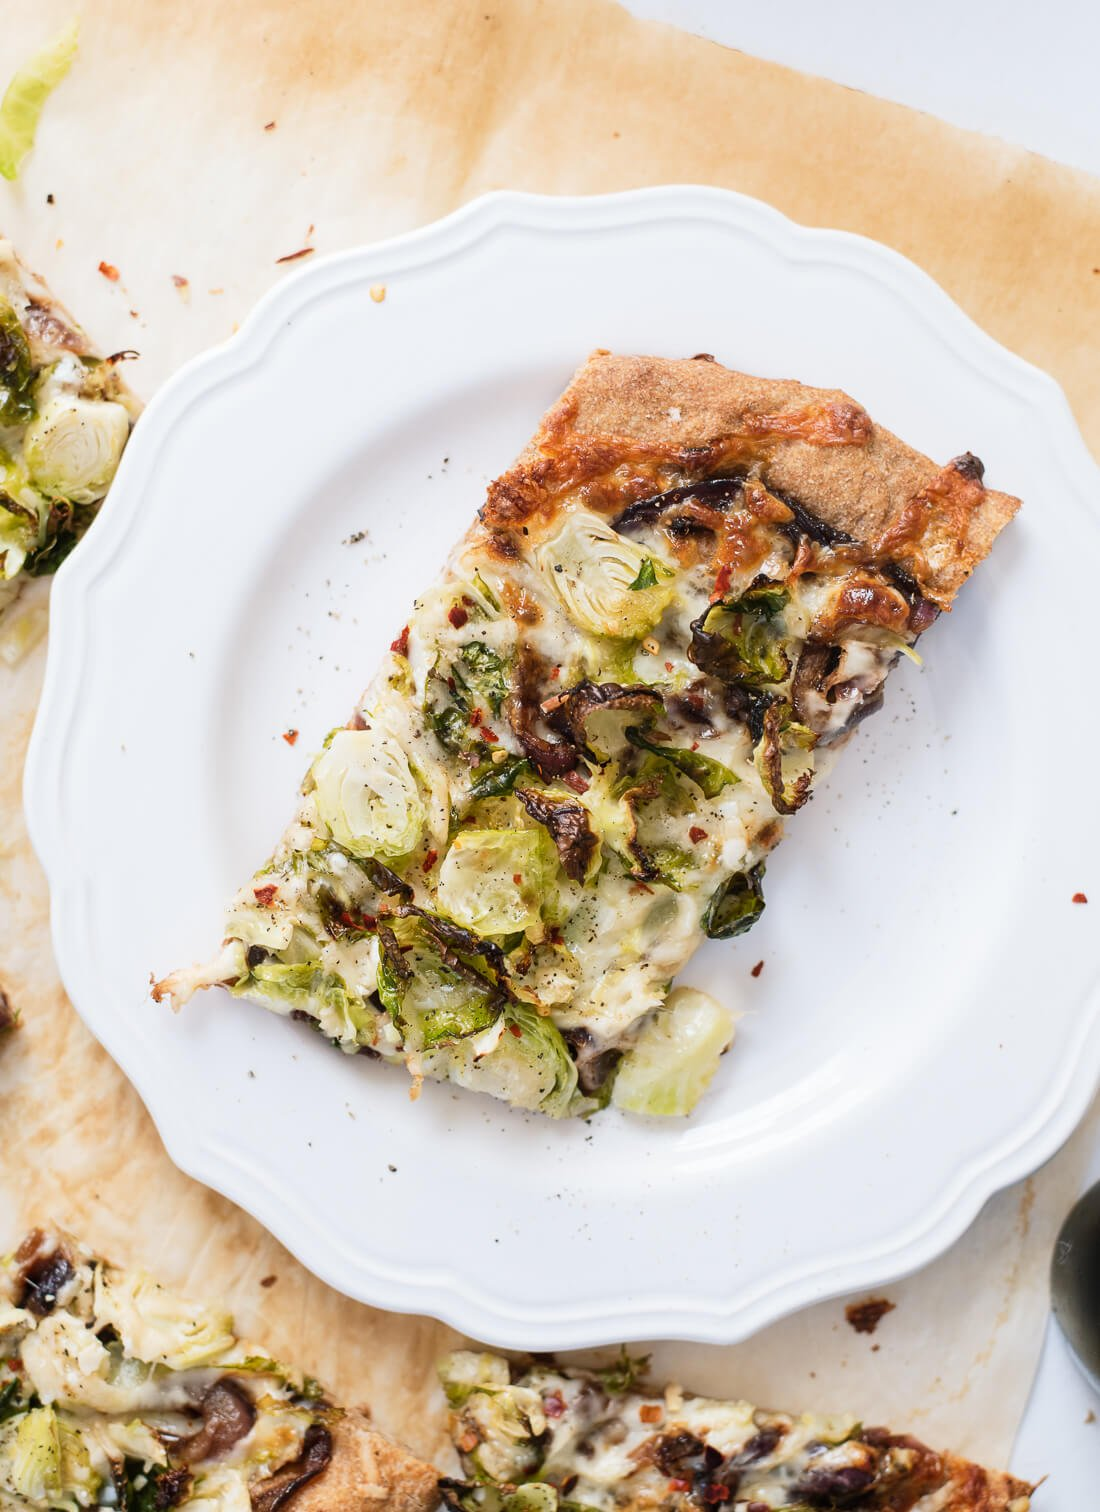 Brussels sprouts pizza slice